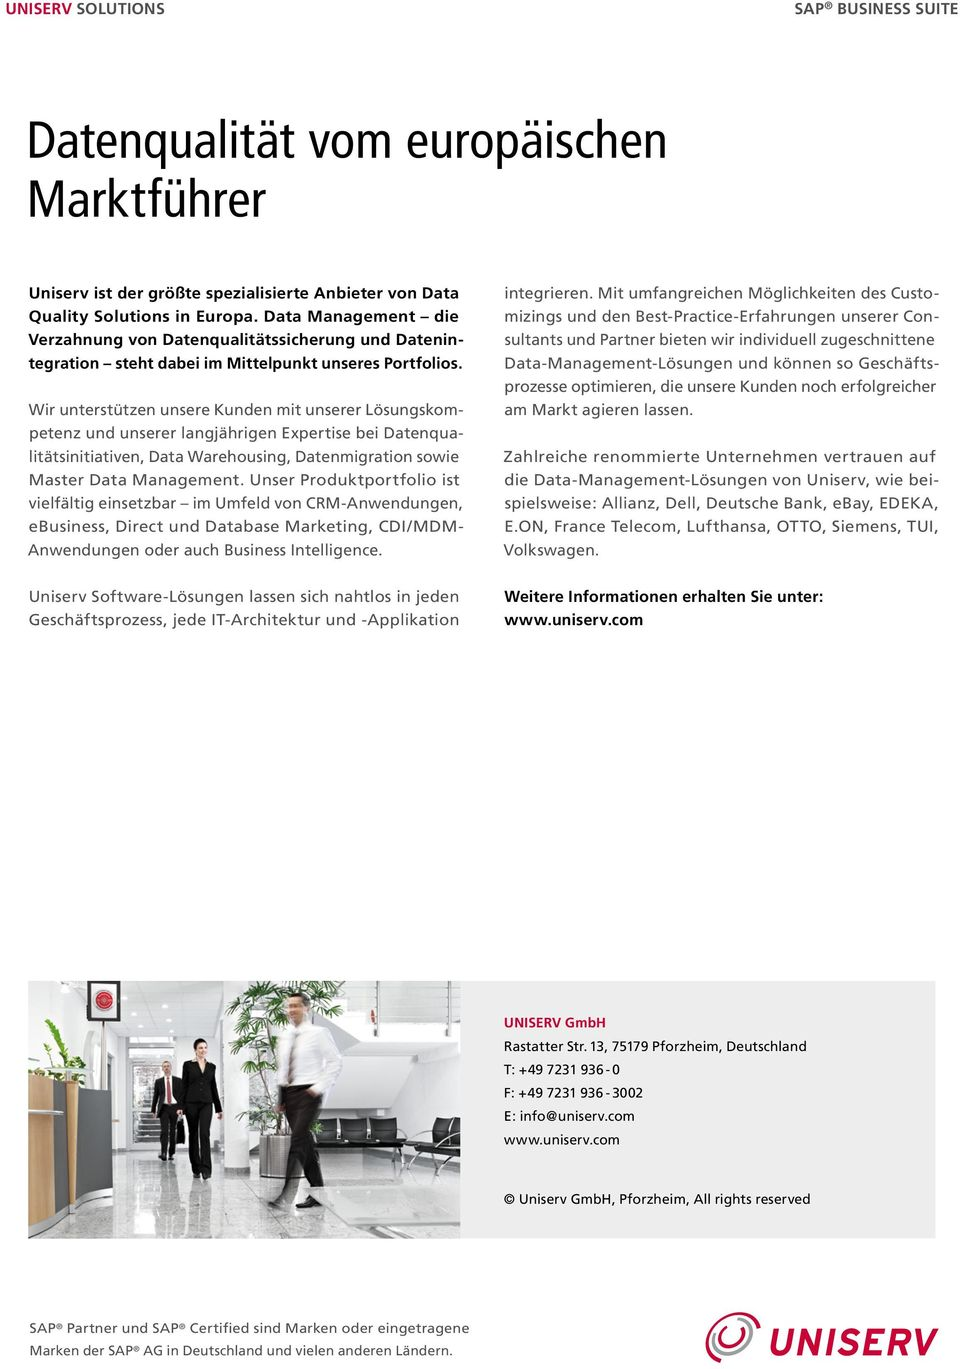 Wir unterstützen unsere Kunden mit unserer Lösungskompetenz und unserer langjährigen Expertise bei Datenqualitätsinitiativen, Data Warehousing, Datenmigration sowie Master Data Management.